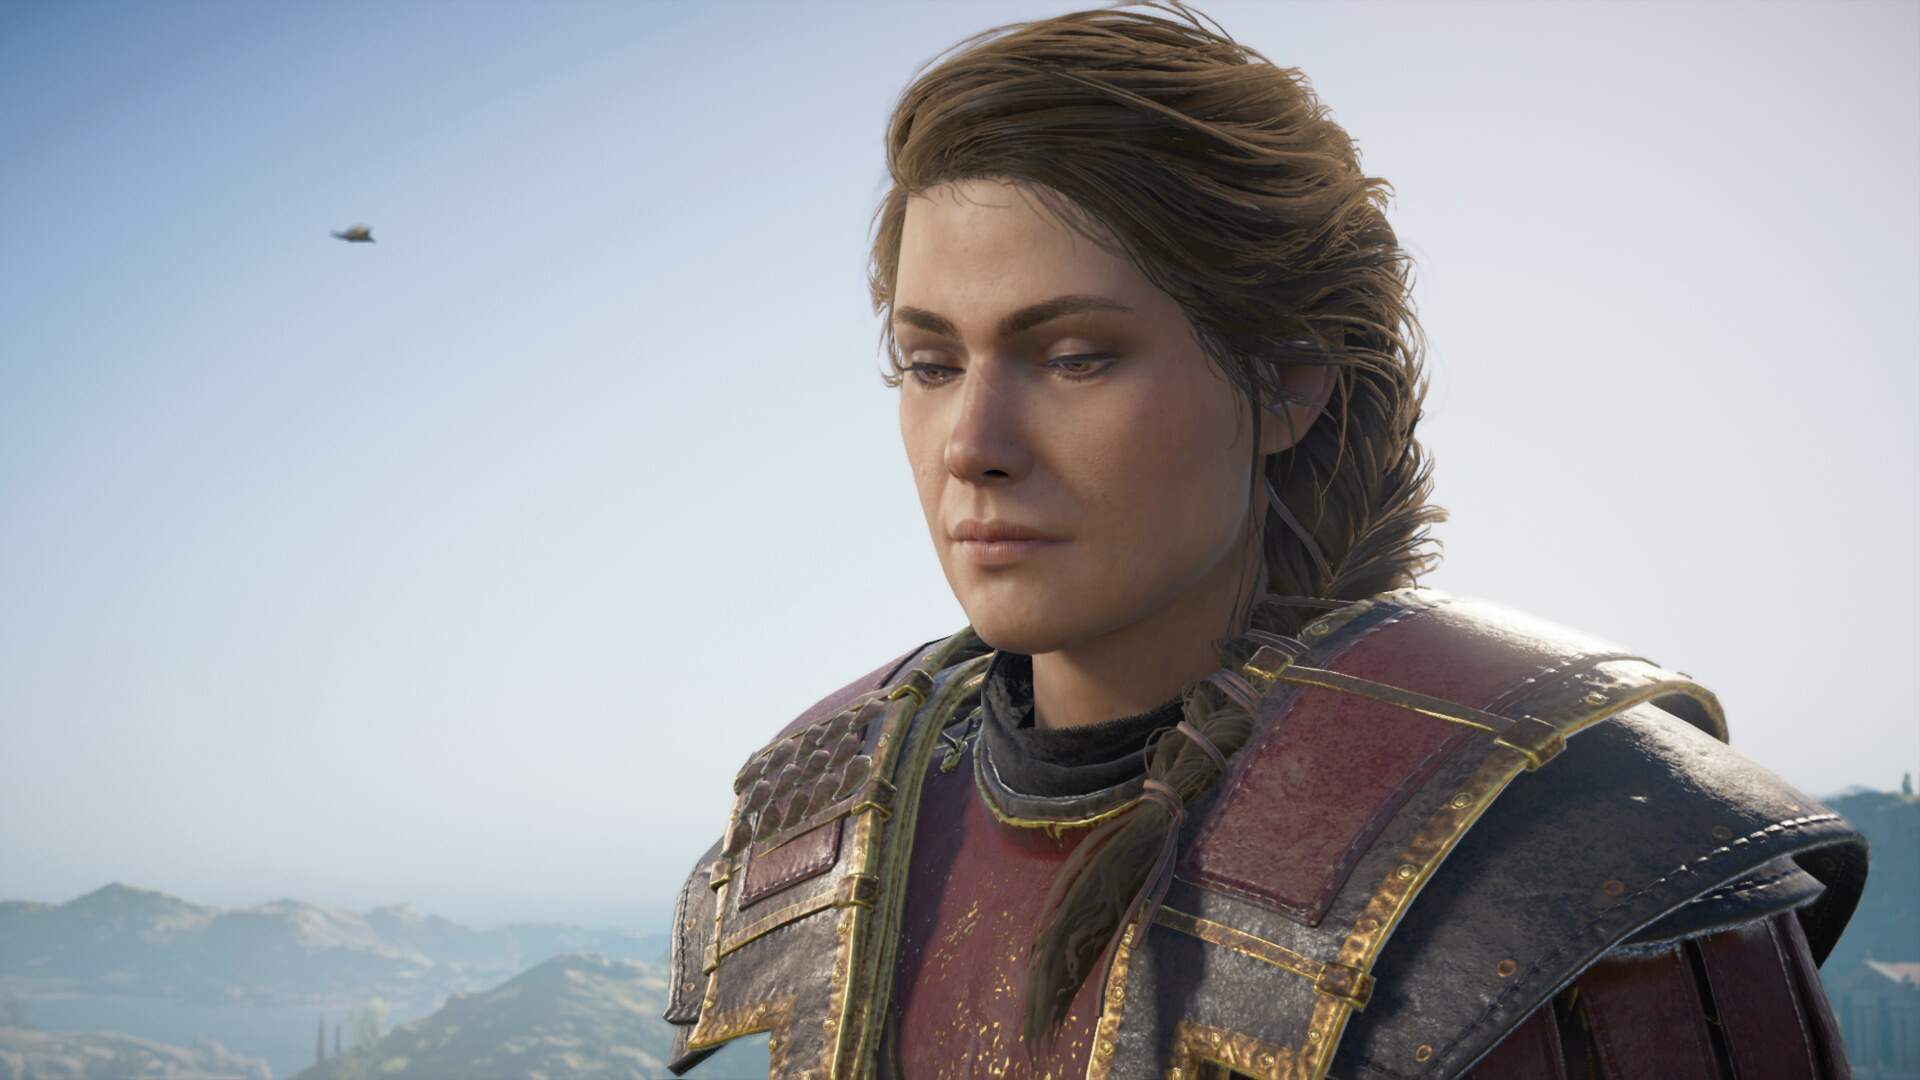 Does Assassin's Creed Odyssey Have New Game Plus?